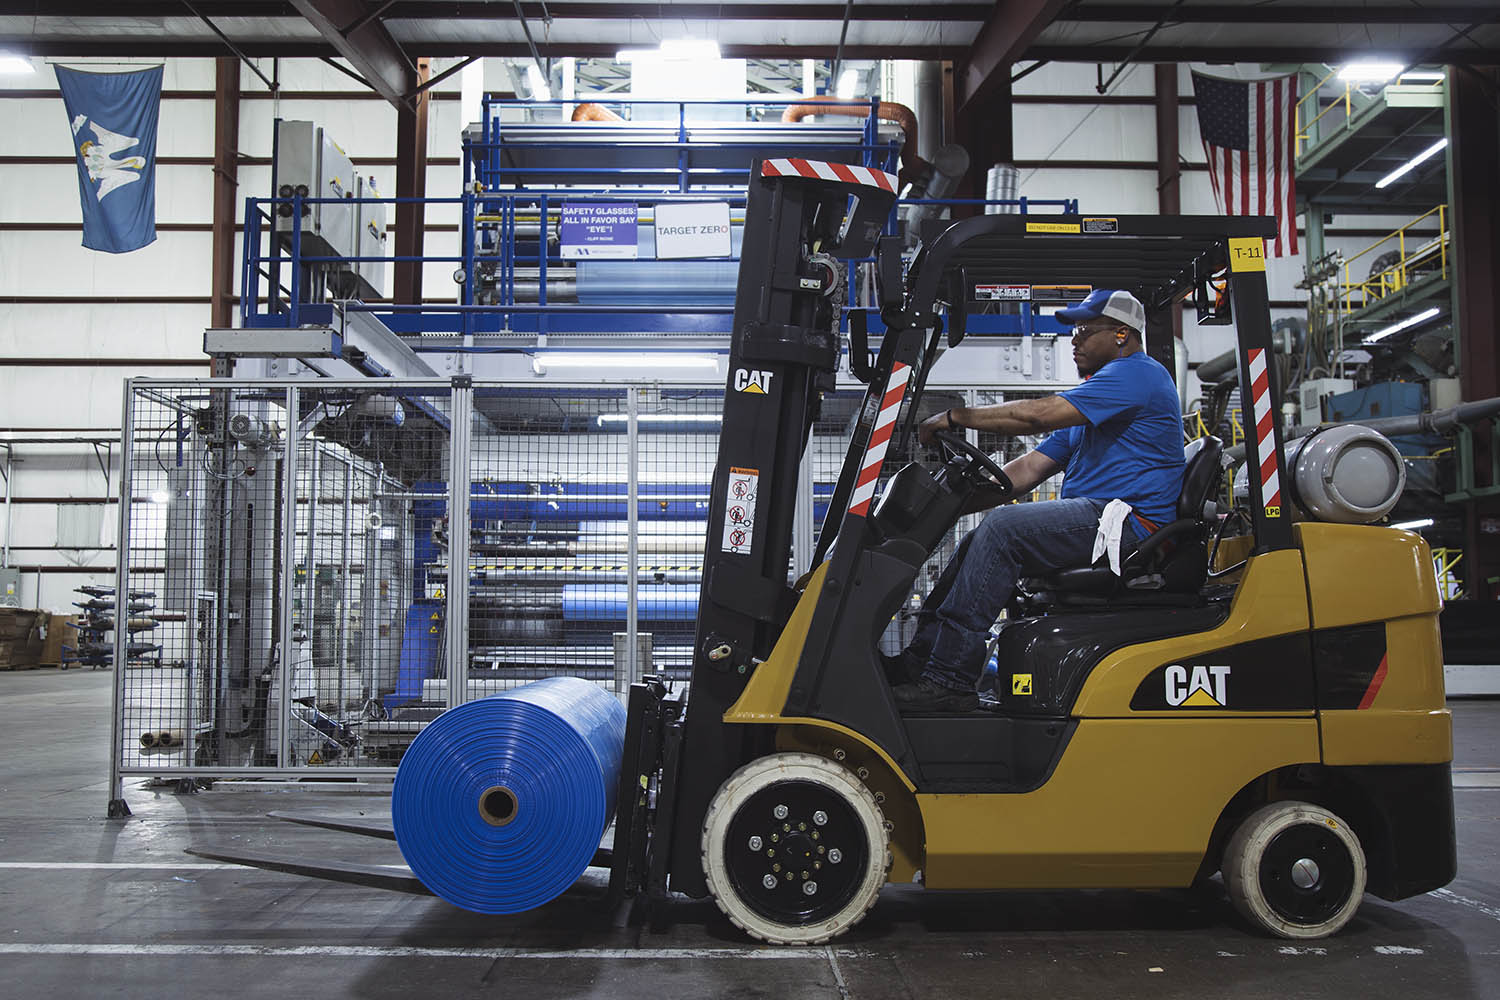 An MSE employee moving specialty film on a forklift